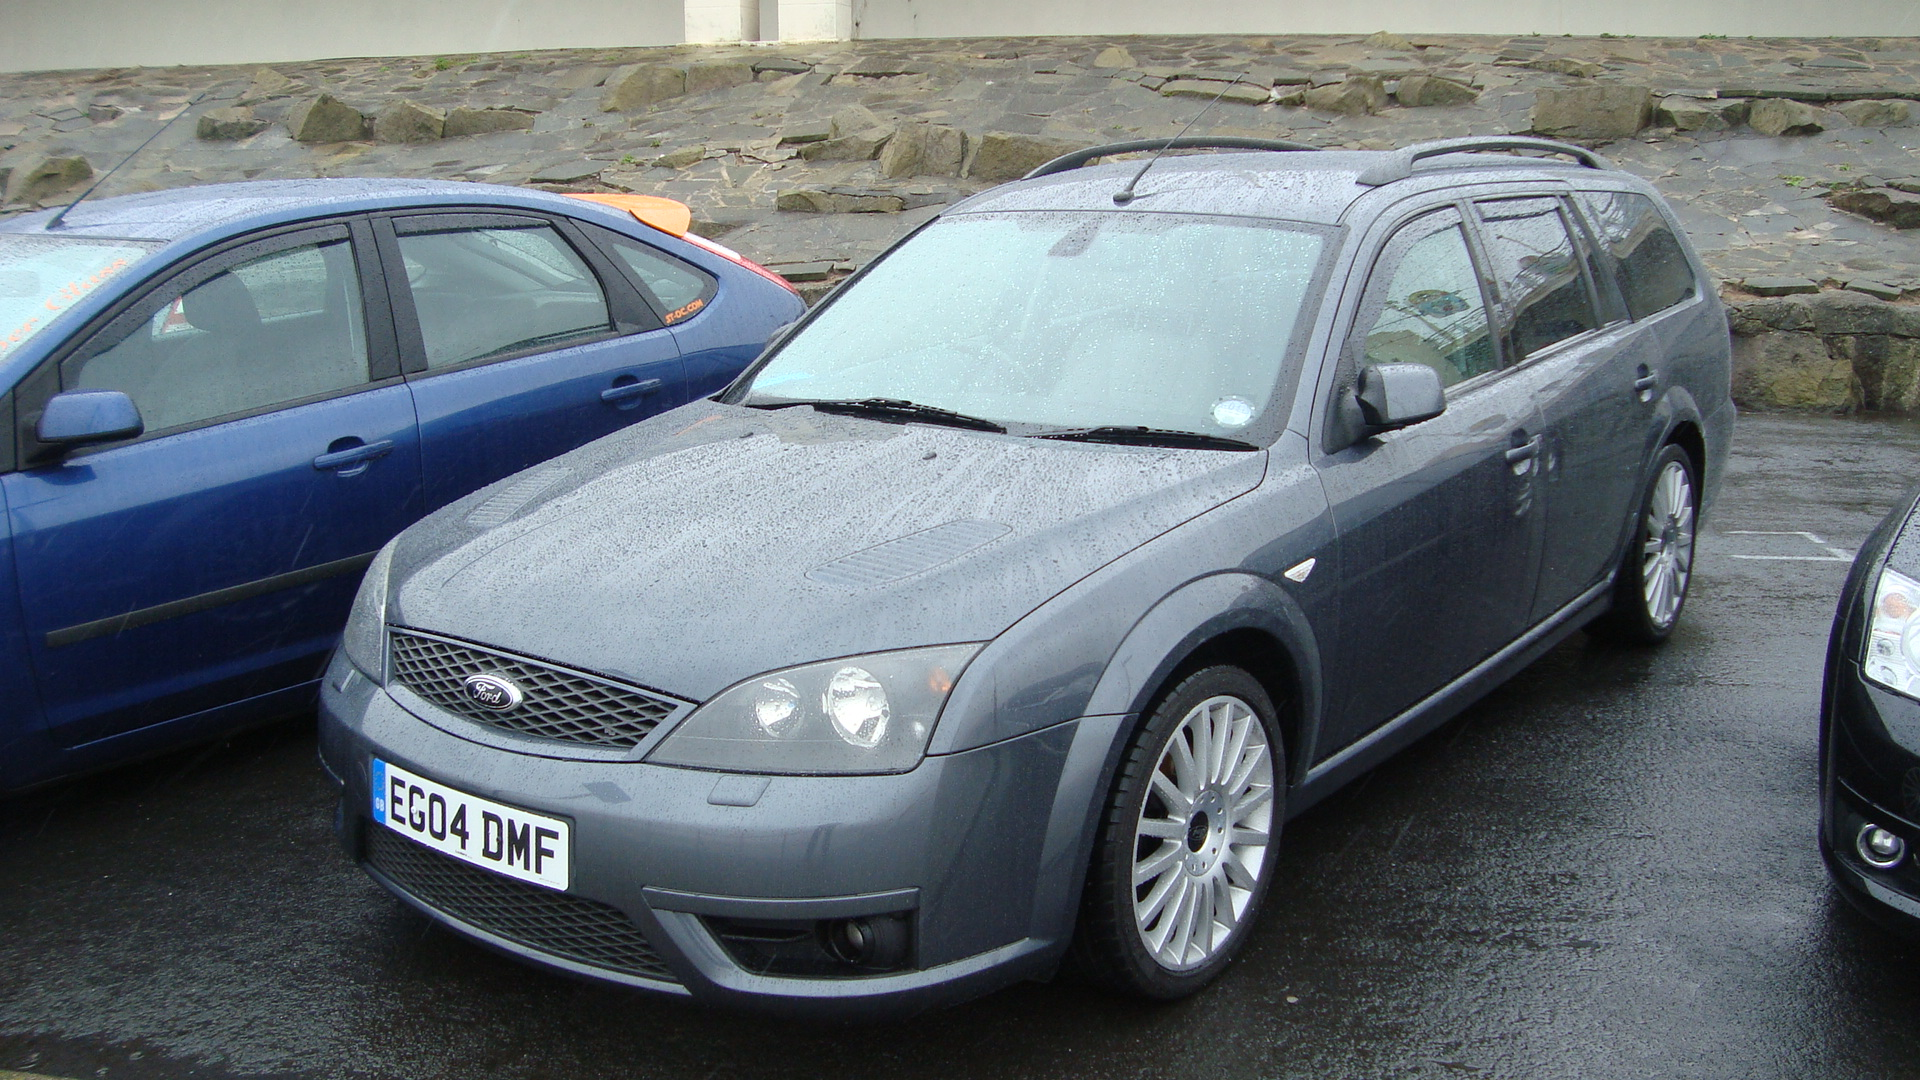 file 2004 ford mondeo st220 estate 13900855304 jpg wikimedia commons. Black Bedroom Furniture Sets. Home Design Ideas